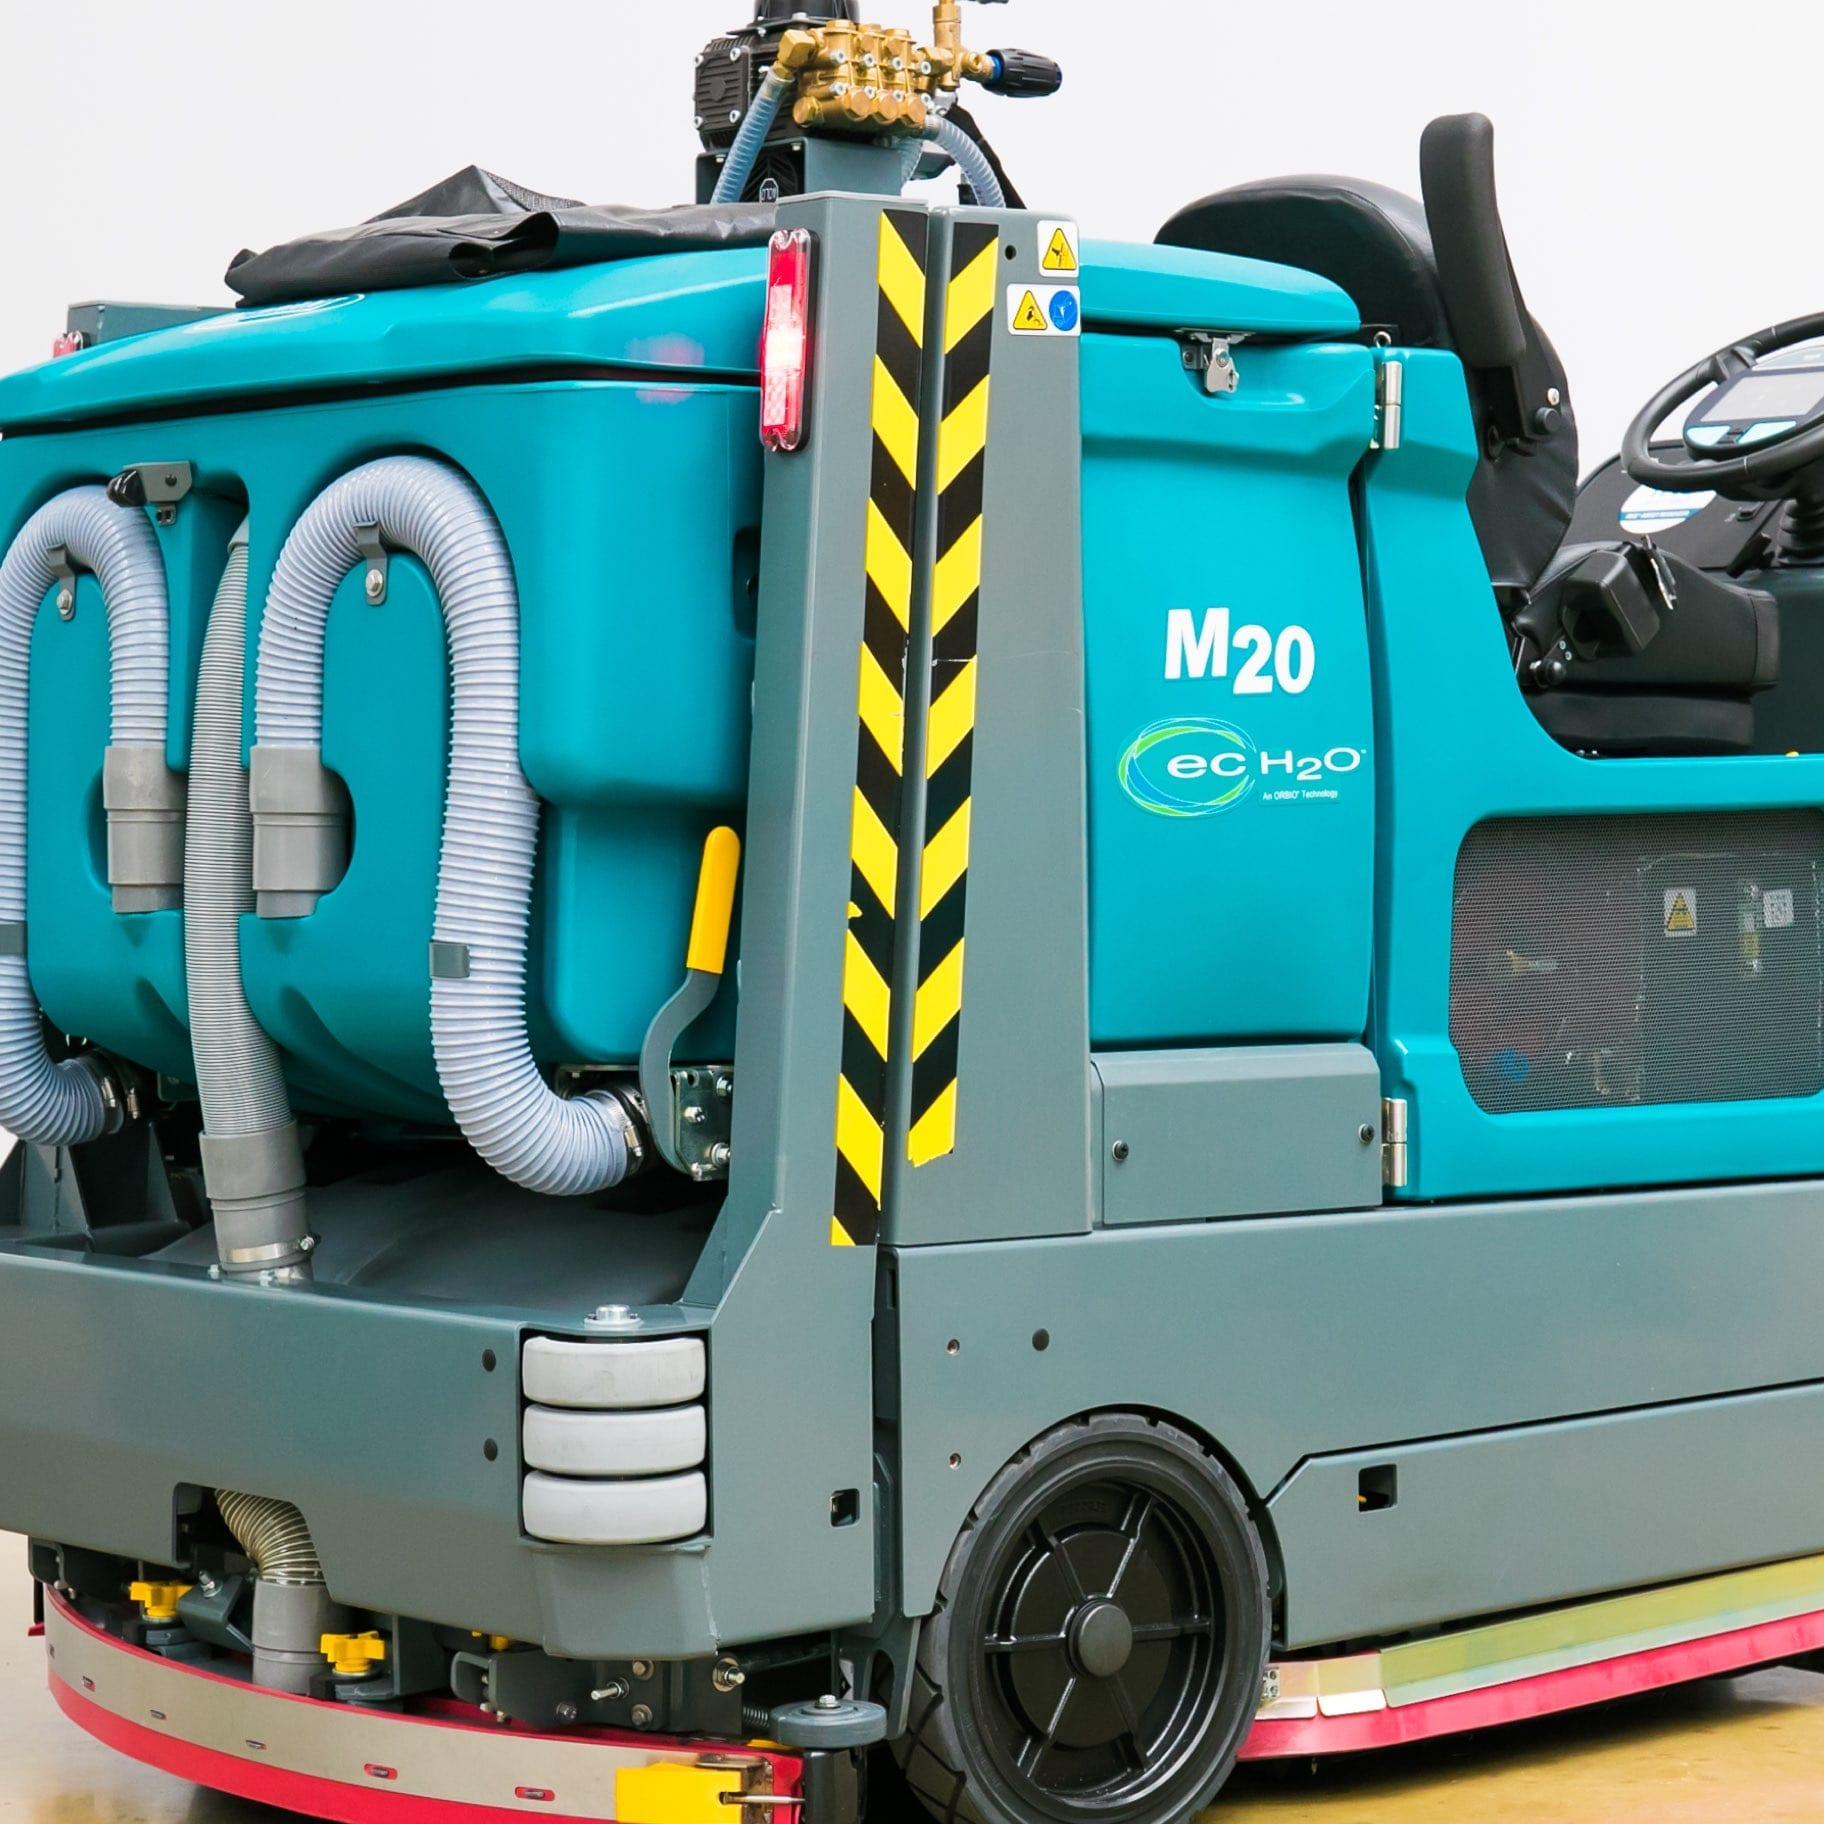 Large Commercial cleaning equipment - leasing options available. South West, Somerset